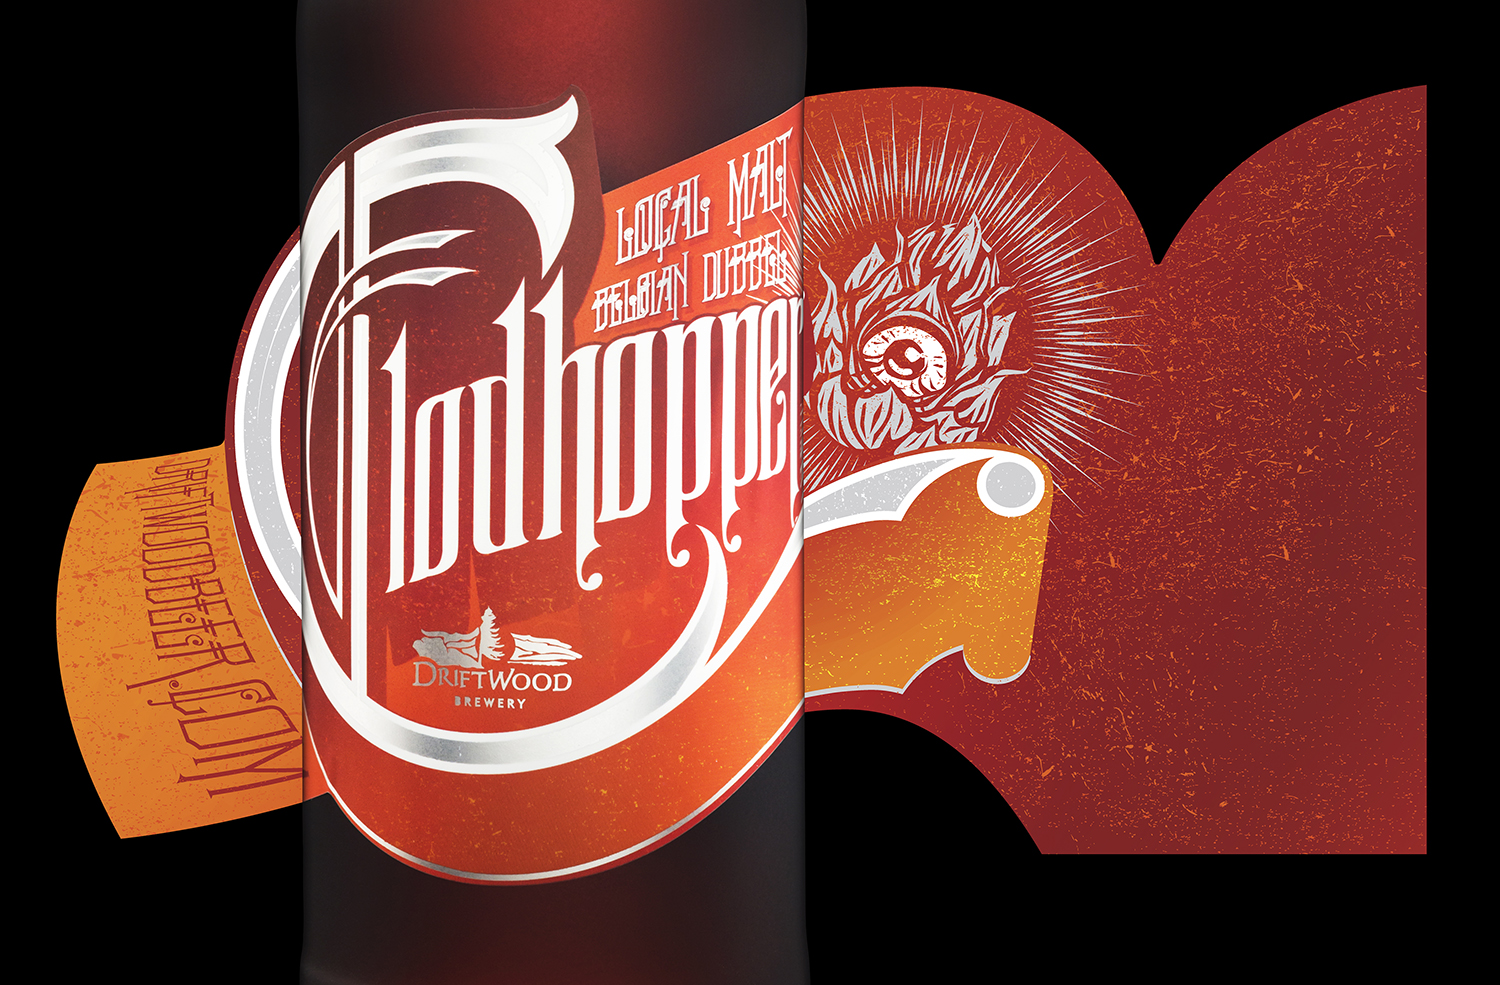 Packaging Design for Driftwood Brewery's Clodhopper Local Malt Belgian Dubbel